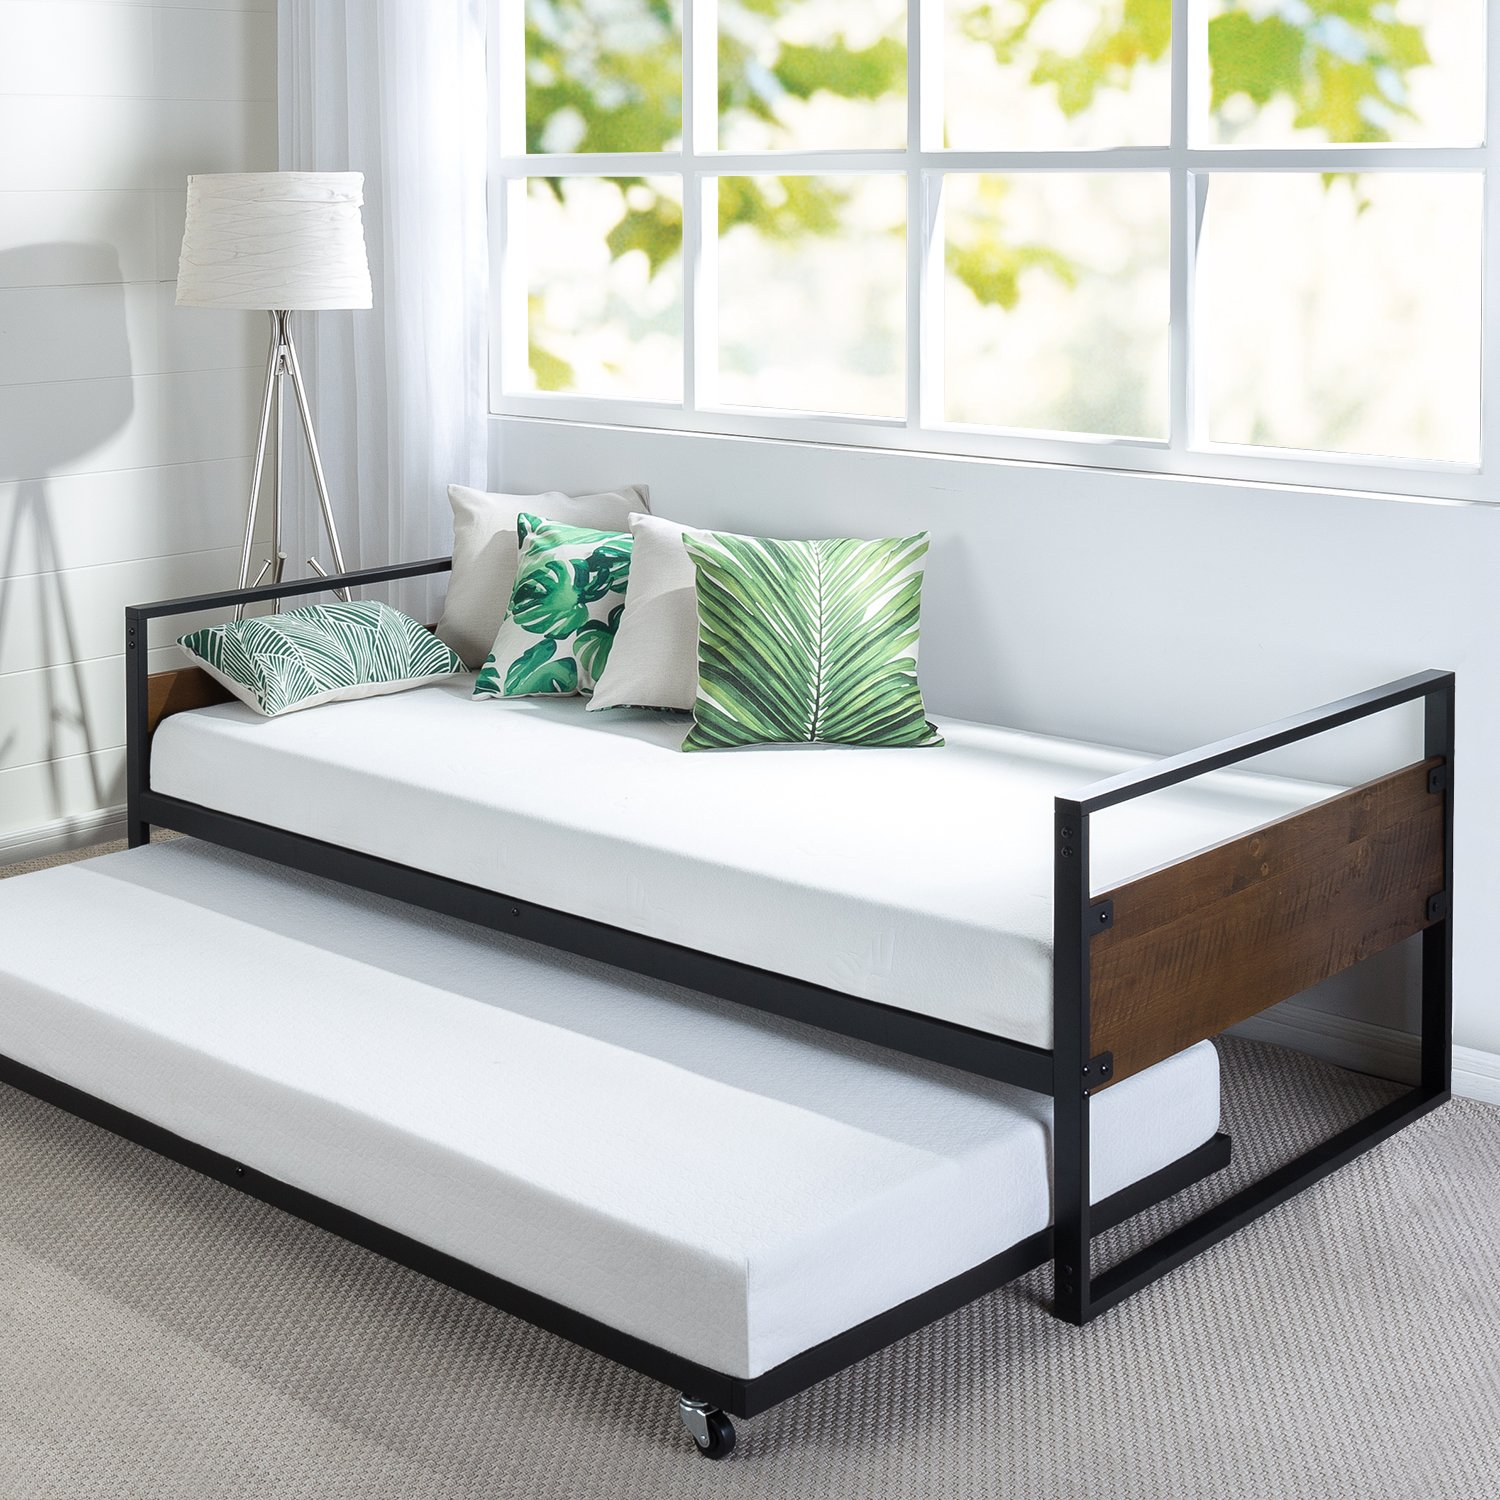 Zinus Suzanne Twin Daybed and Trundle Frame Set / Premium Steel Slat Support / Daybed and Roll Out Trundle Accommodate Twin Size Mattresses Sold Separately by Zinus